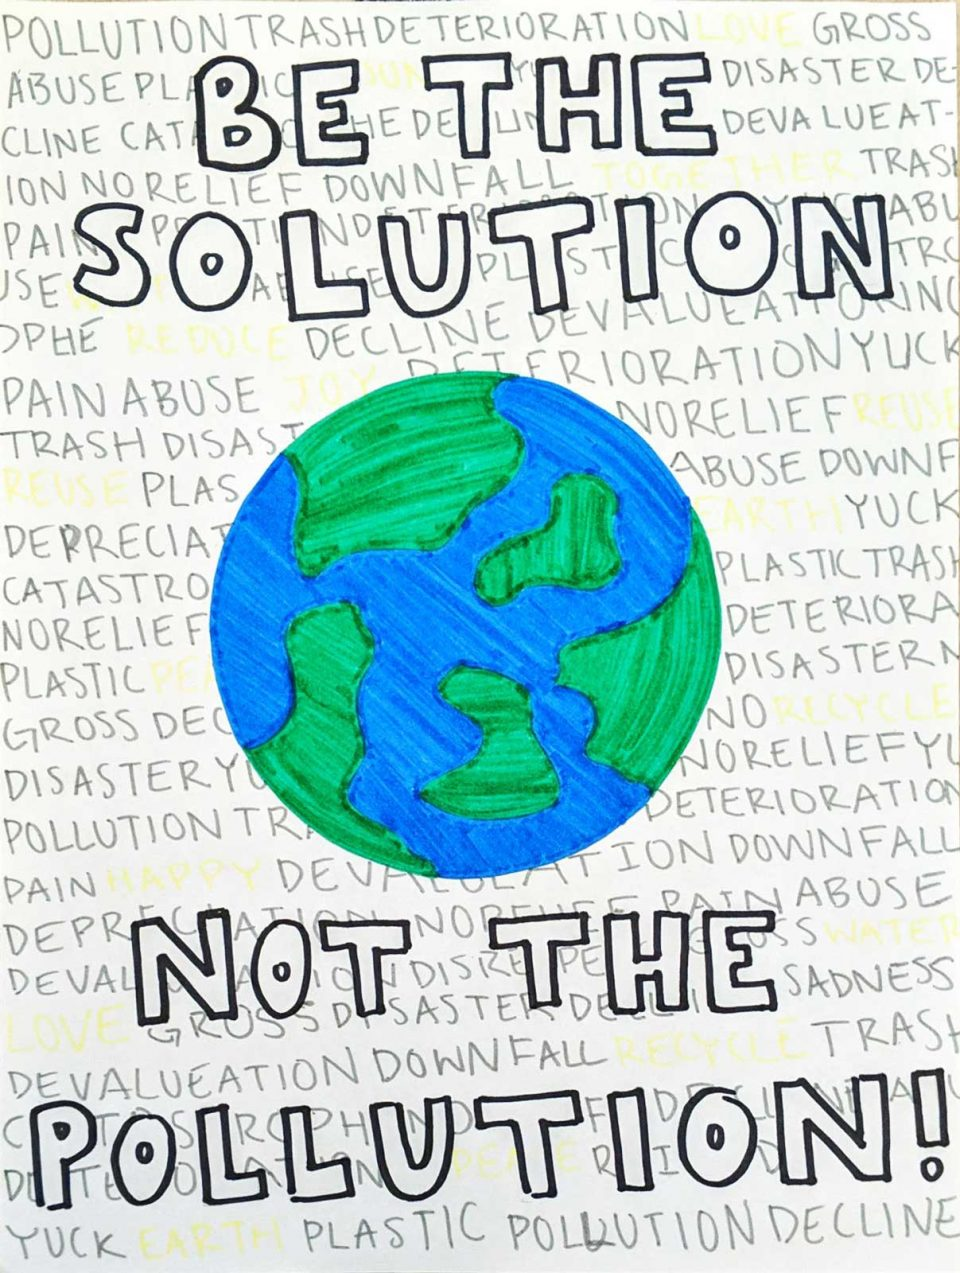 Be the solution, Not the pollution! Hand-drawn poster. Large block letters and a globe site atop a wall of words including pollution, trash, deterioration, gross, catastrophe, plastic, downfall, and abuse. Occasional yellow words through include reduce, love, and water.